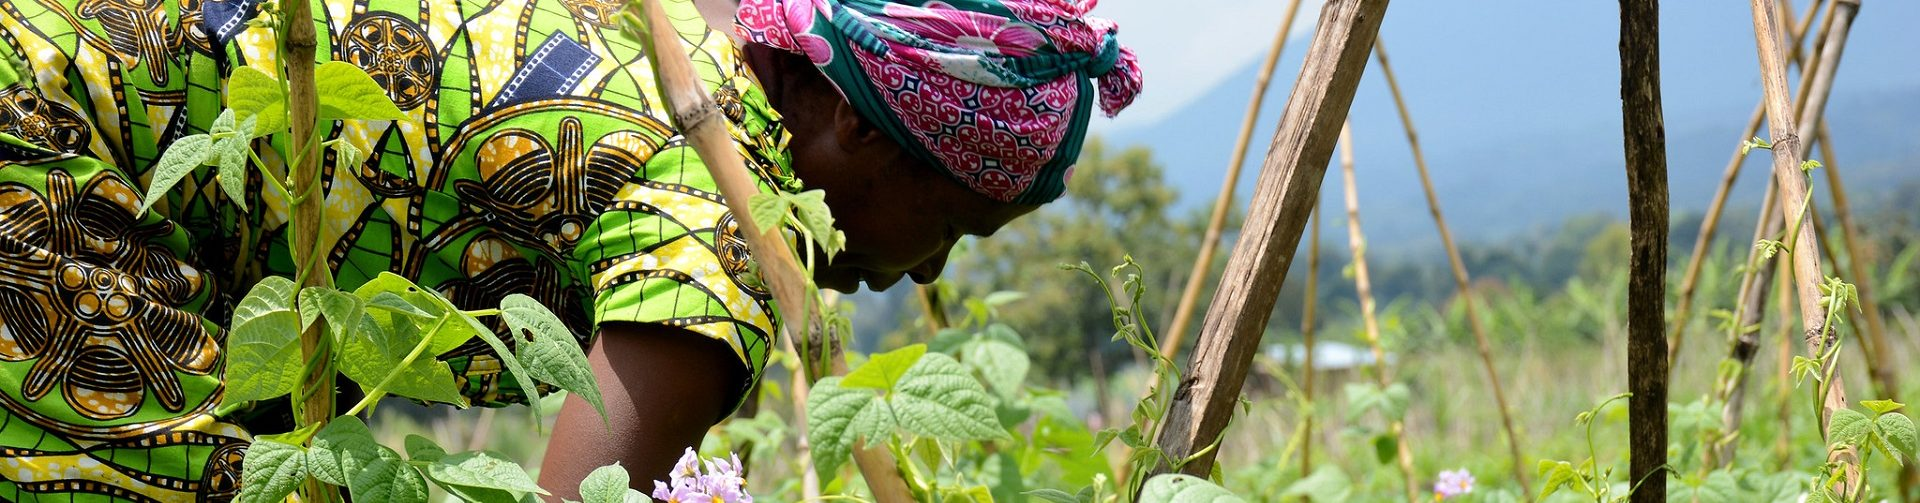 Rethinking poverty eradication and food security through agriculture in Africa